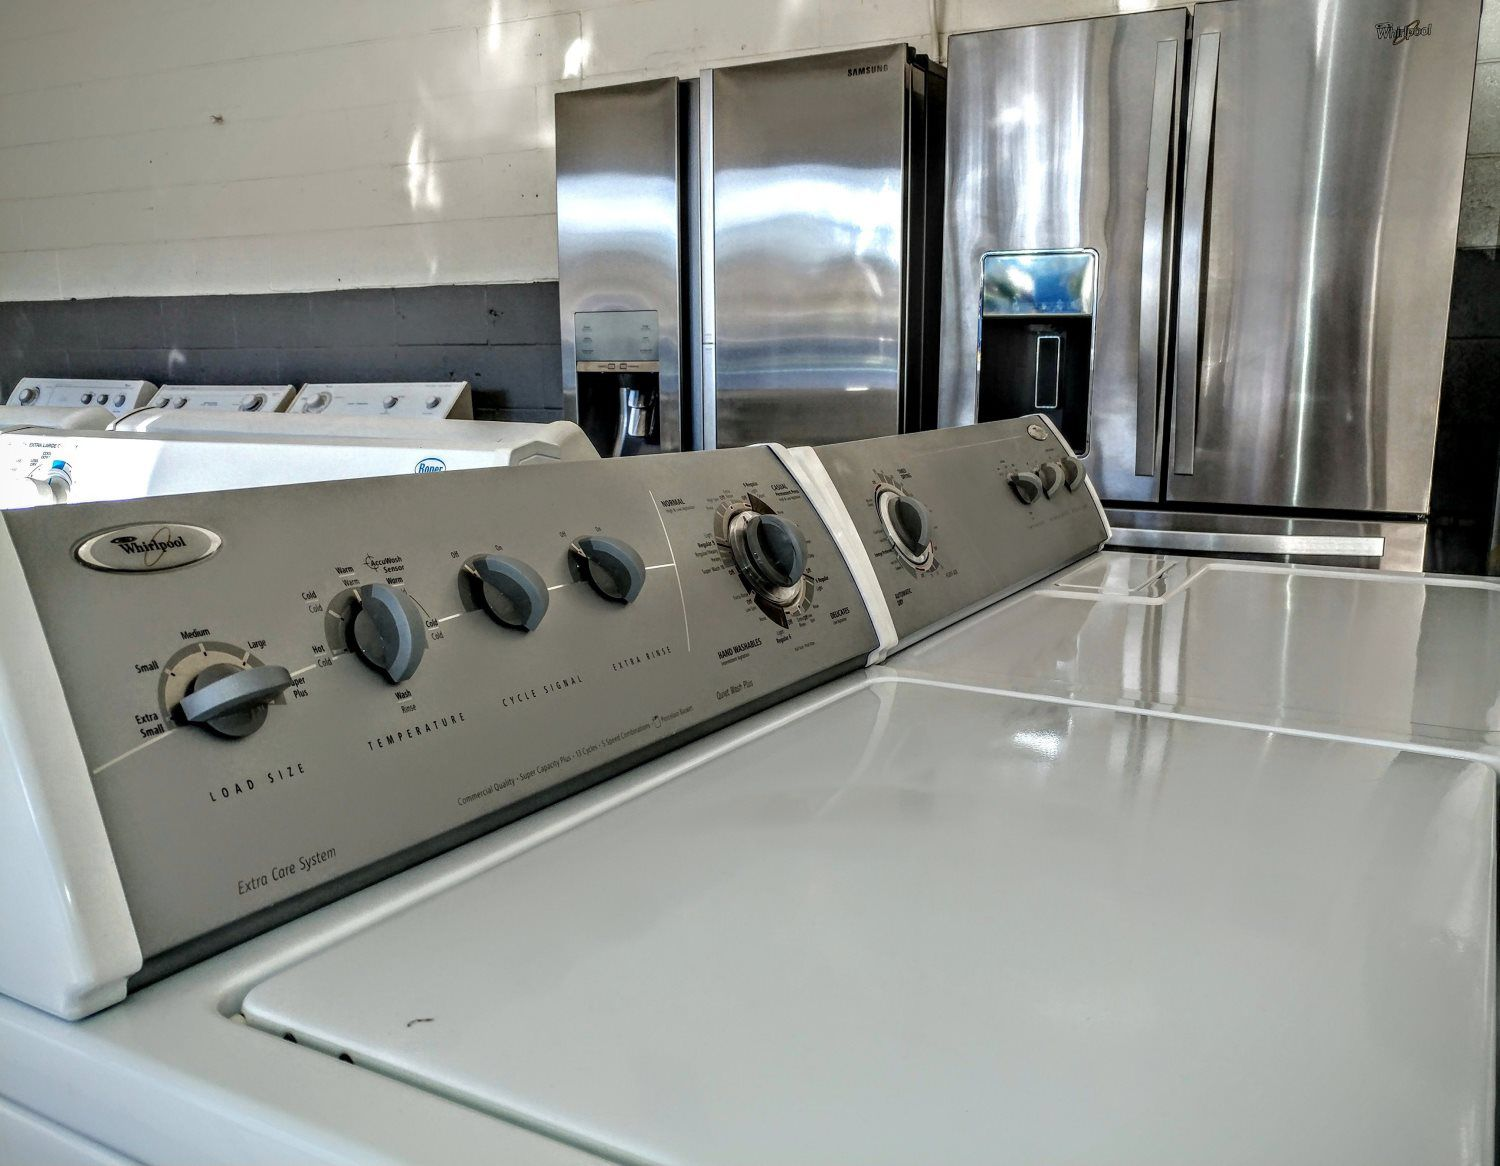 Product Gallery - Second Cycle Appliance Inc